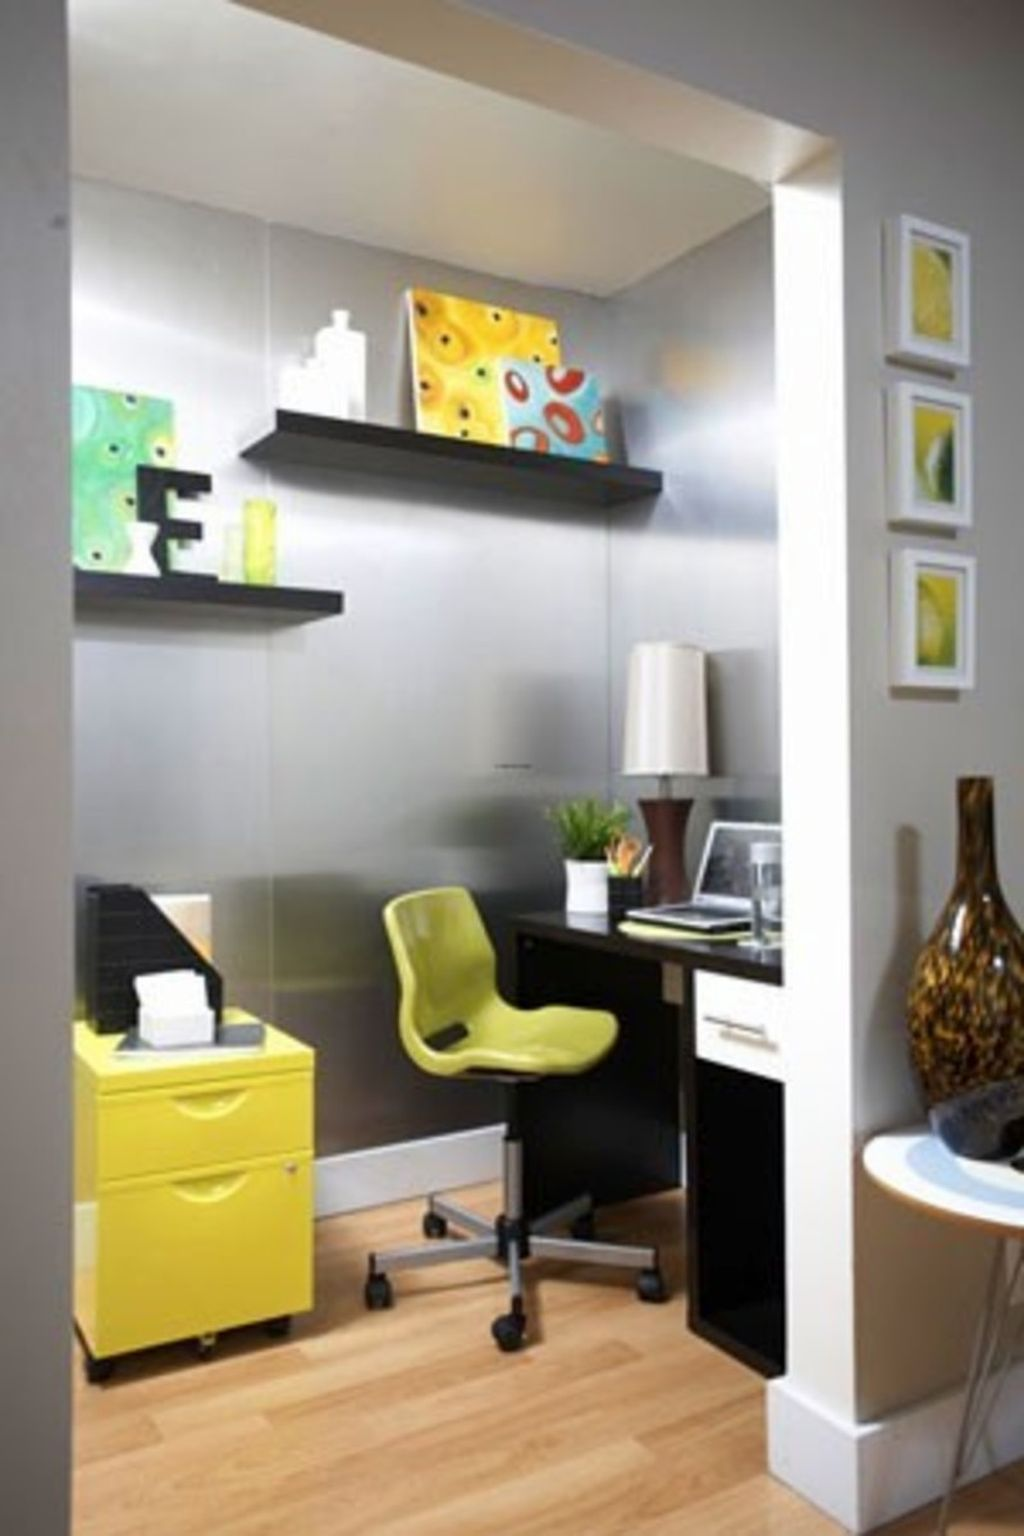 20 inspiring home office design ideas for small spaces - Small bedroom space ideas property ...